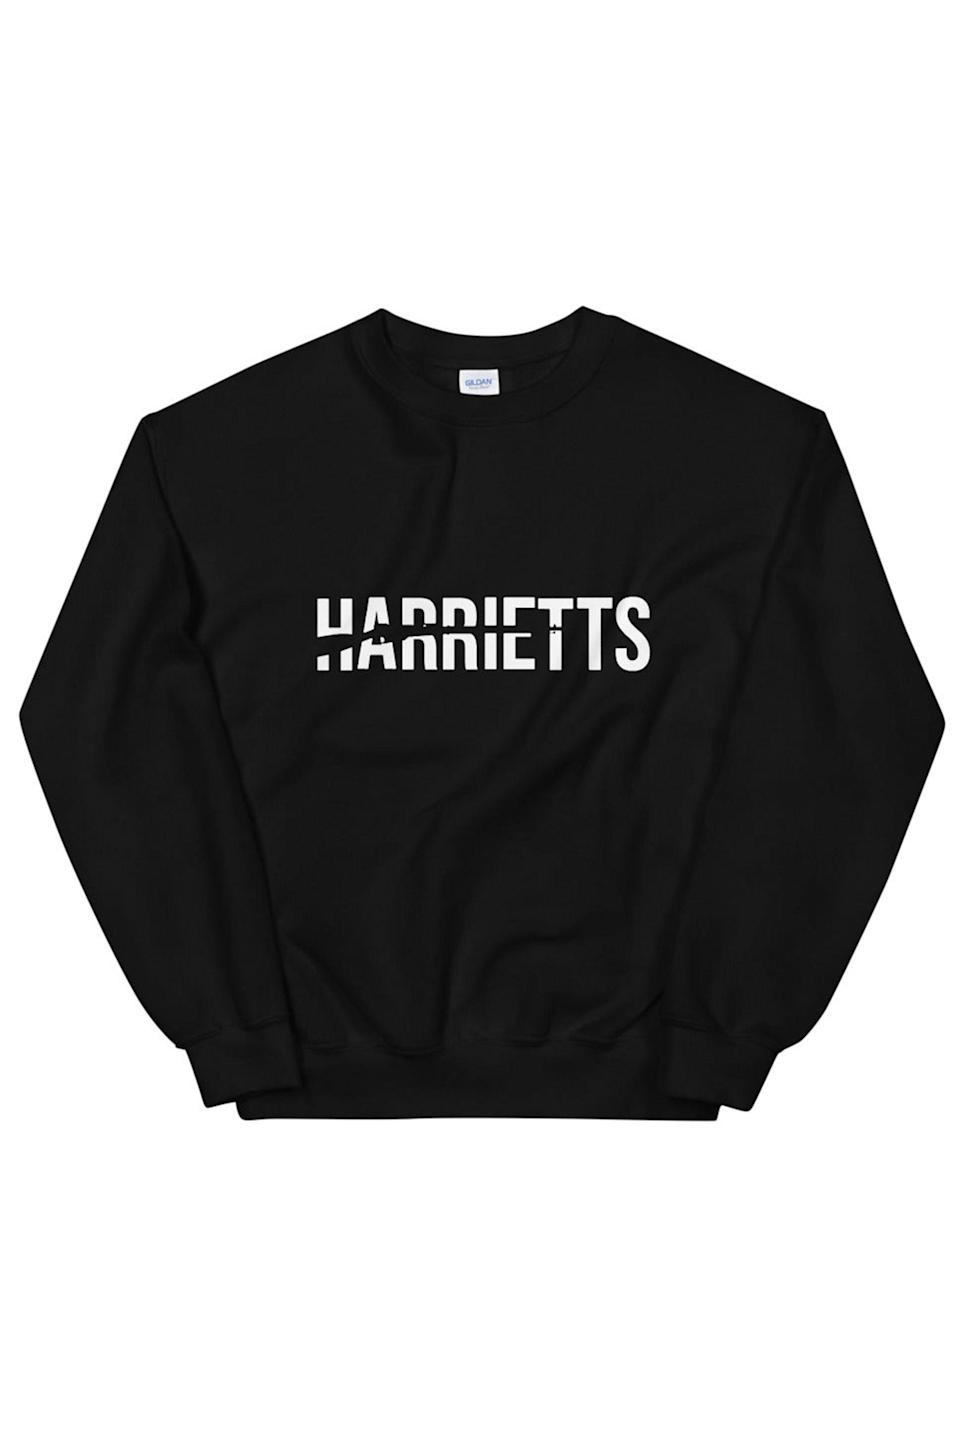 """<p><strong>Harriett's </strong></p><p>bigcartel.com</p><p><strong>$40.00</strong></p><p><a href=""""https://conversationswithharriett.bigcartel.com/product/harriett-s-sweatshirt"""" rel=""""nofollow noopener"""" target=""""_blank"""" data-ylk=""""slk:Shop Now"""" class=""""link rapid-noclick-resp"""">Shop Now</a></p><p>Try gifting merch from their fave bookshop. </p>"""